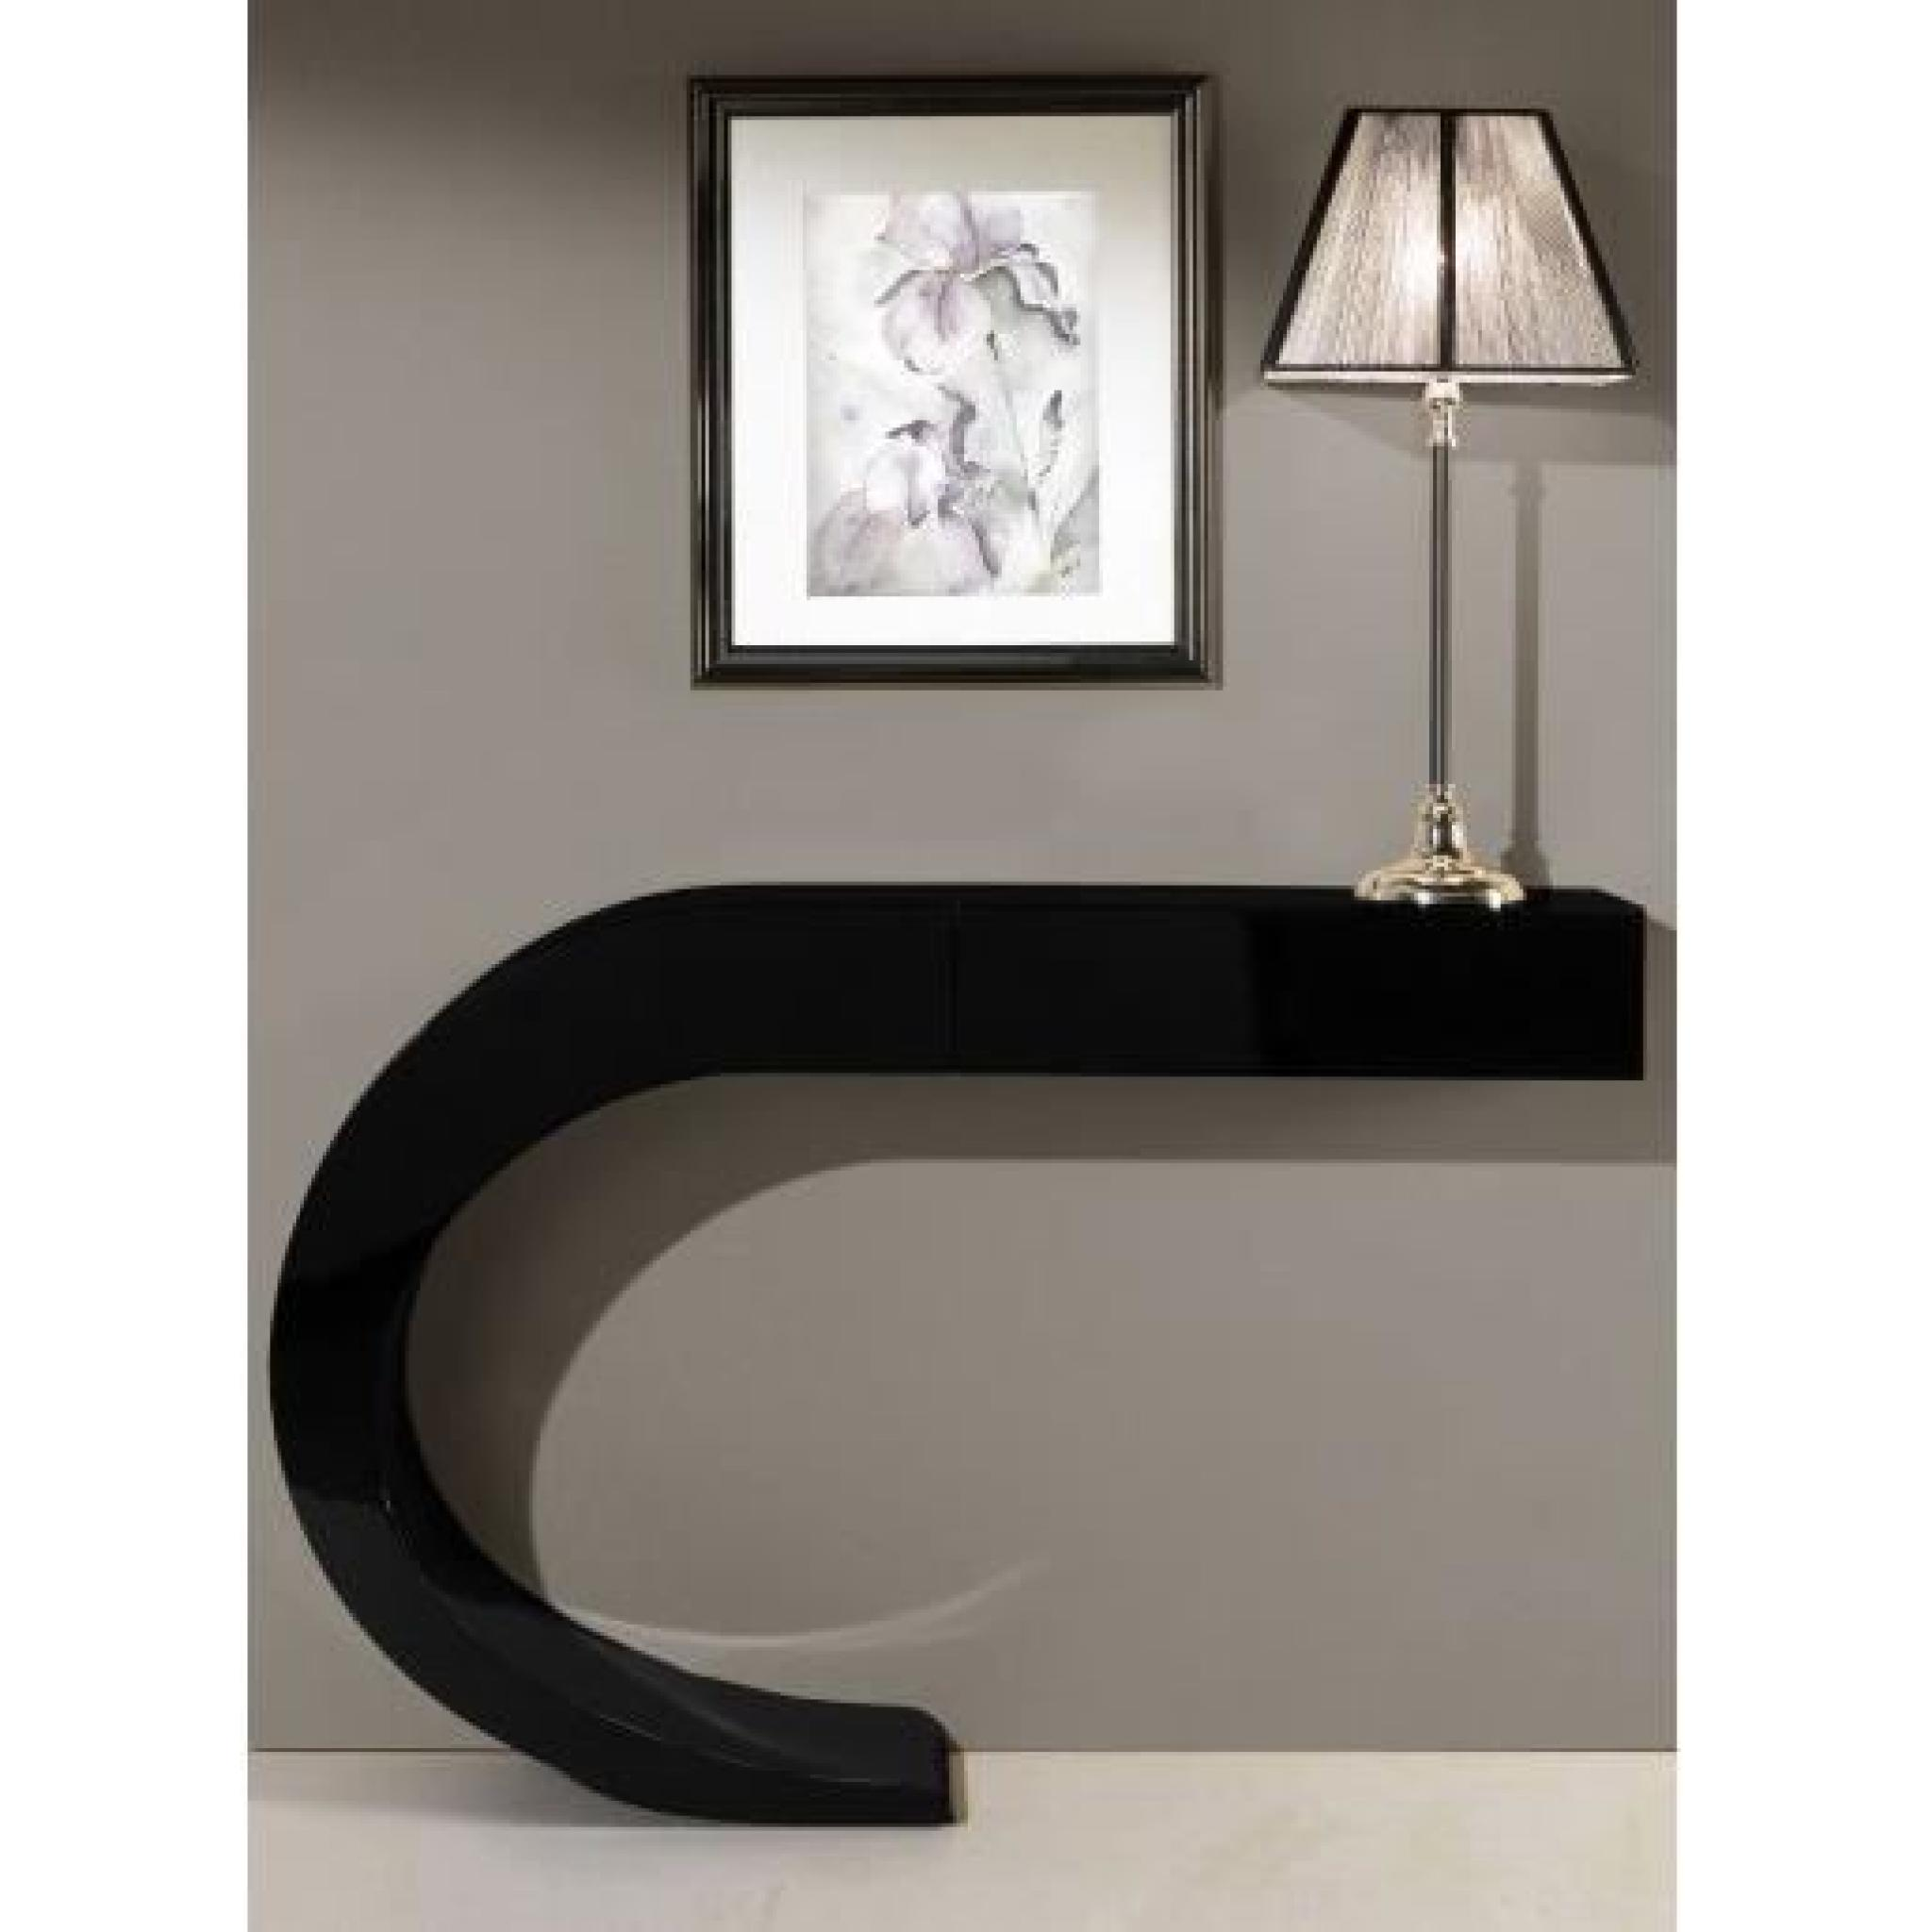 console design a rien noir laqu 1t ue achat vente. Black Bedroom Furniture Sets. Home Design Ideas